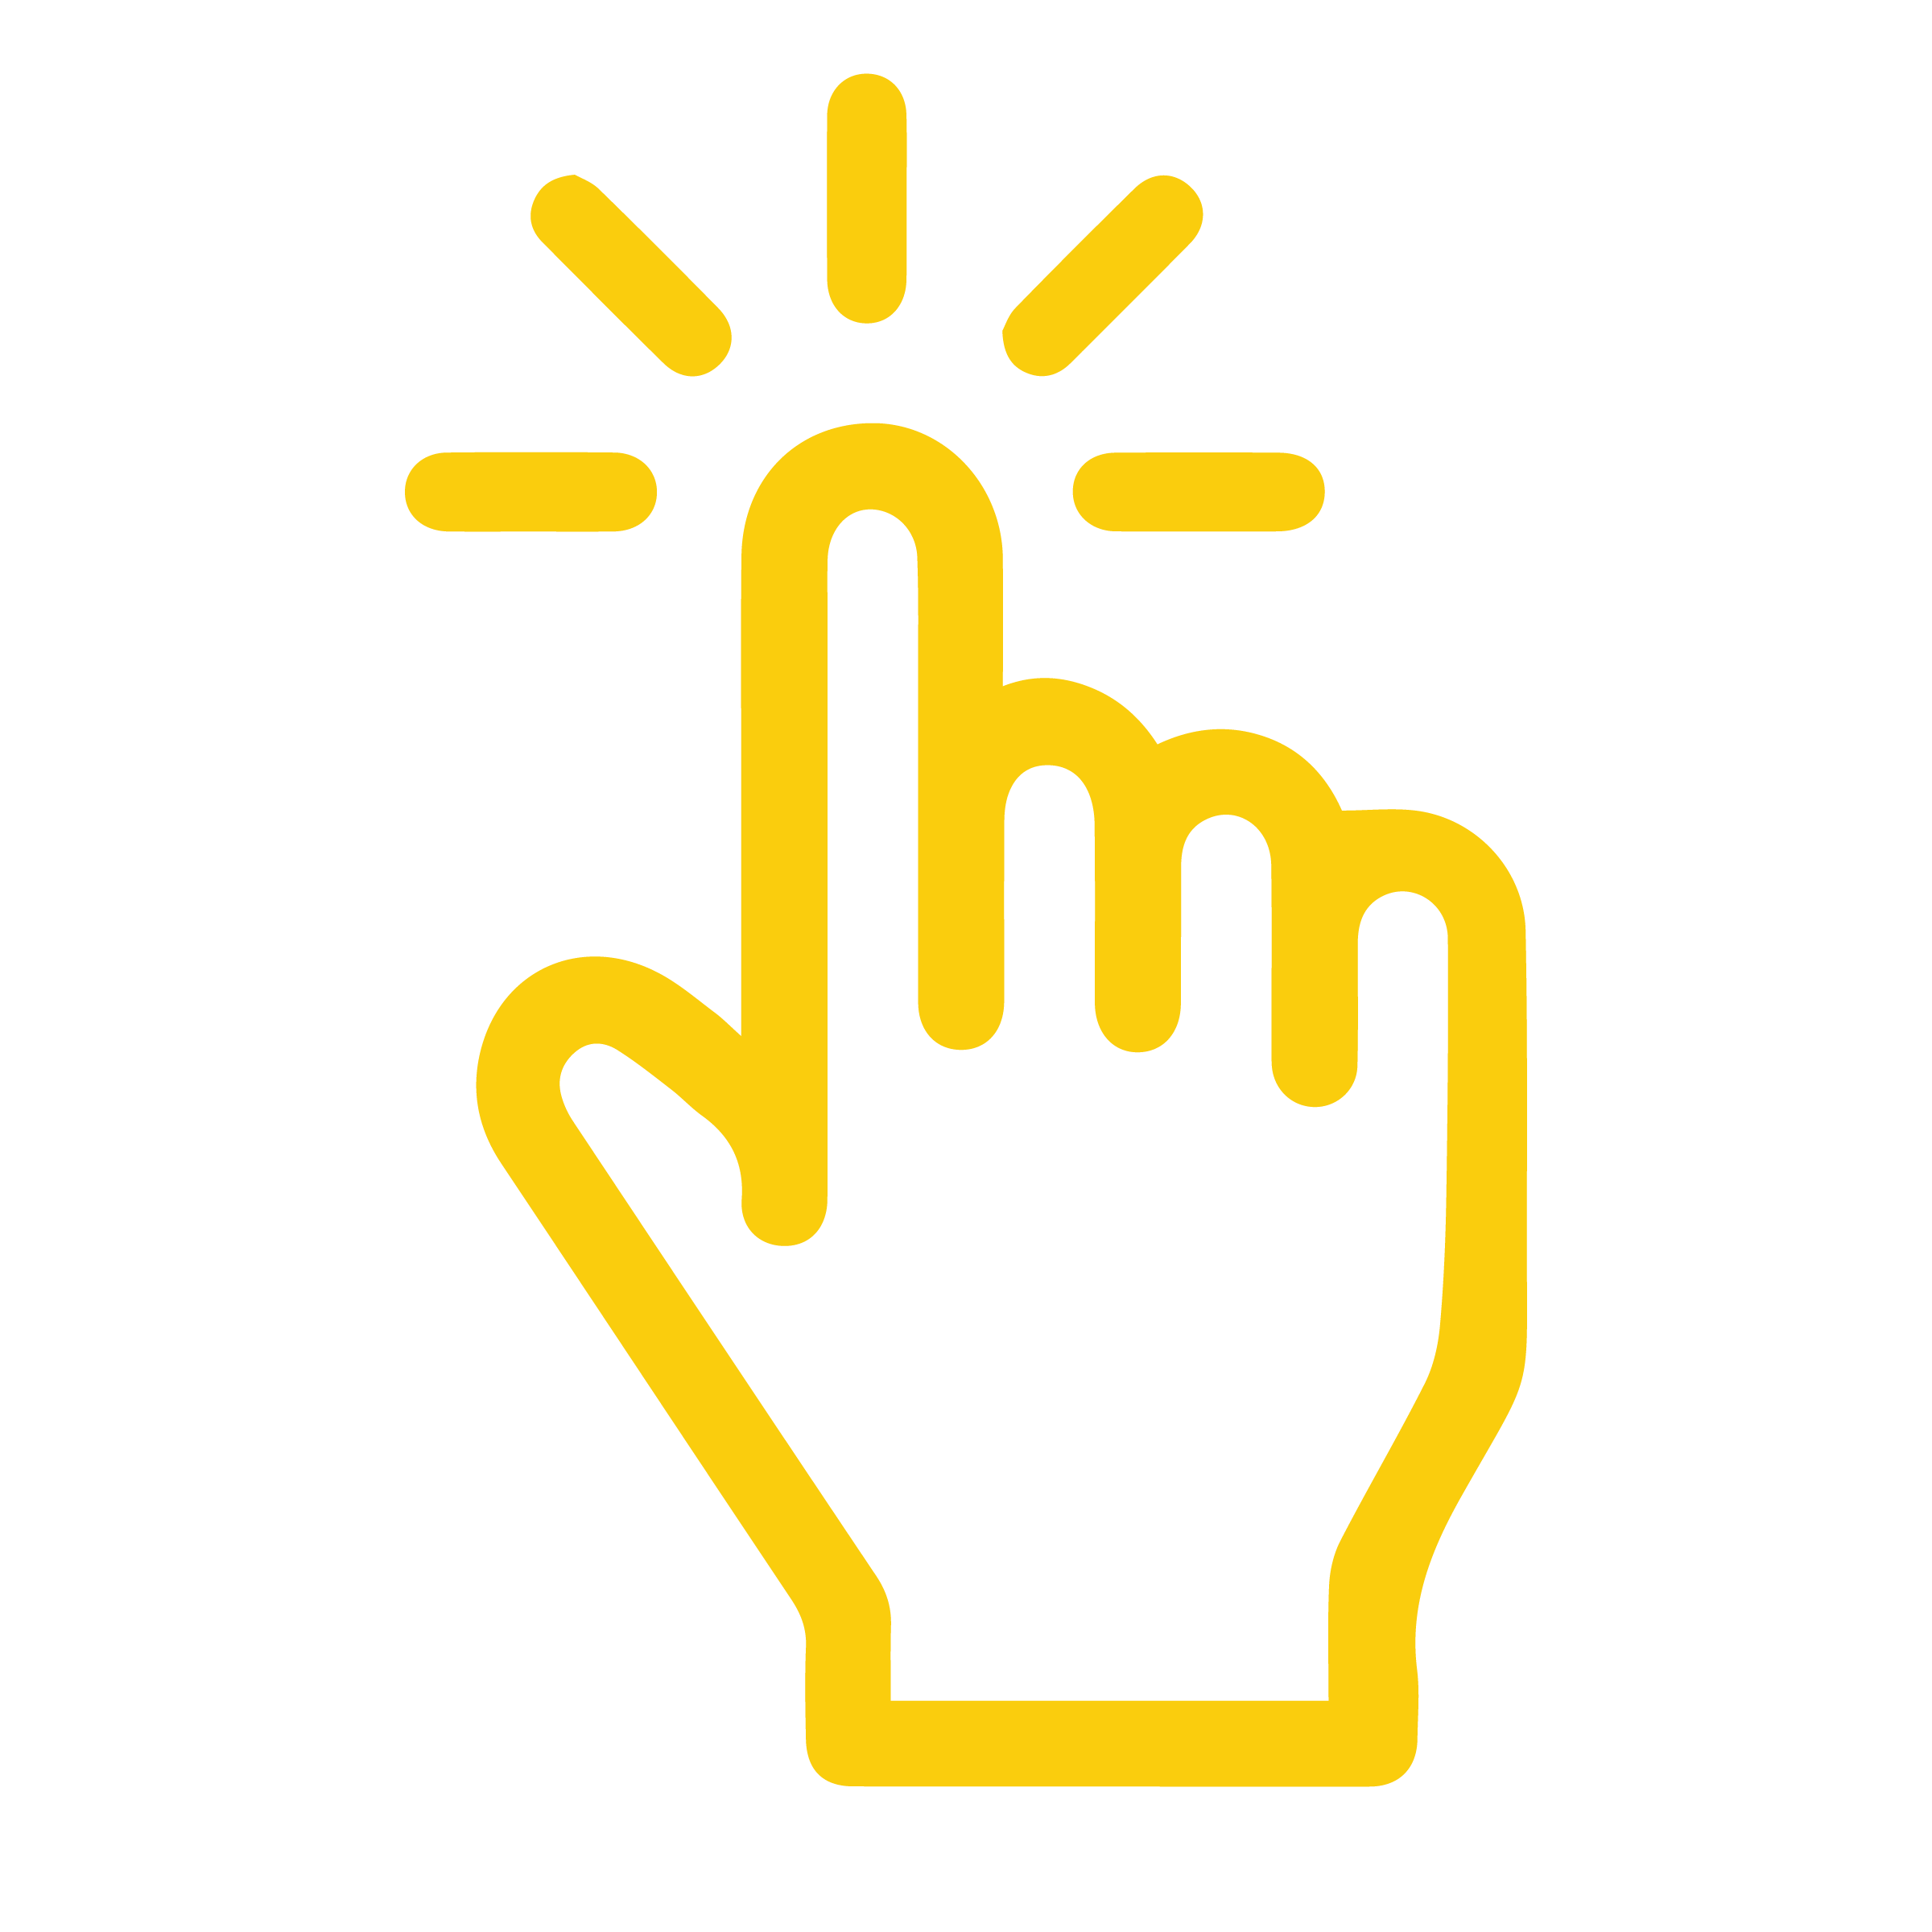 click-icon-01.png